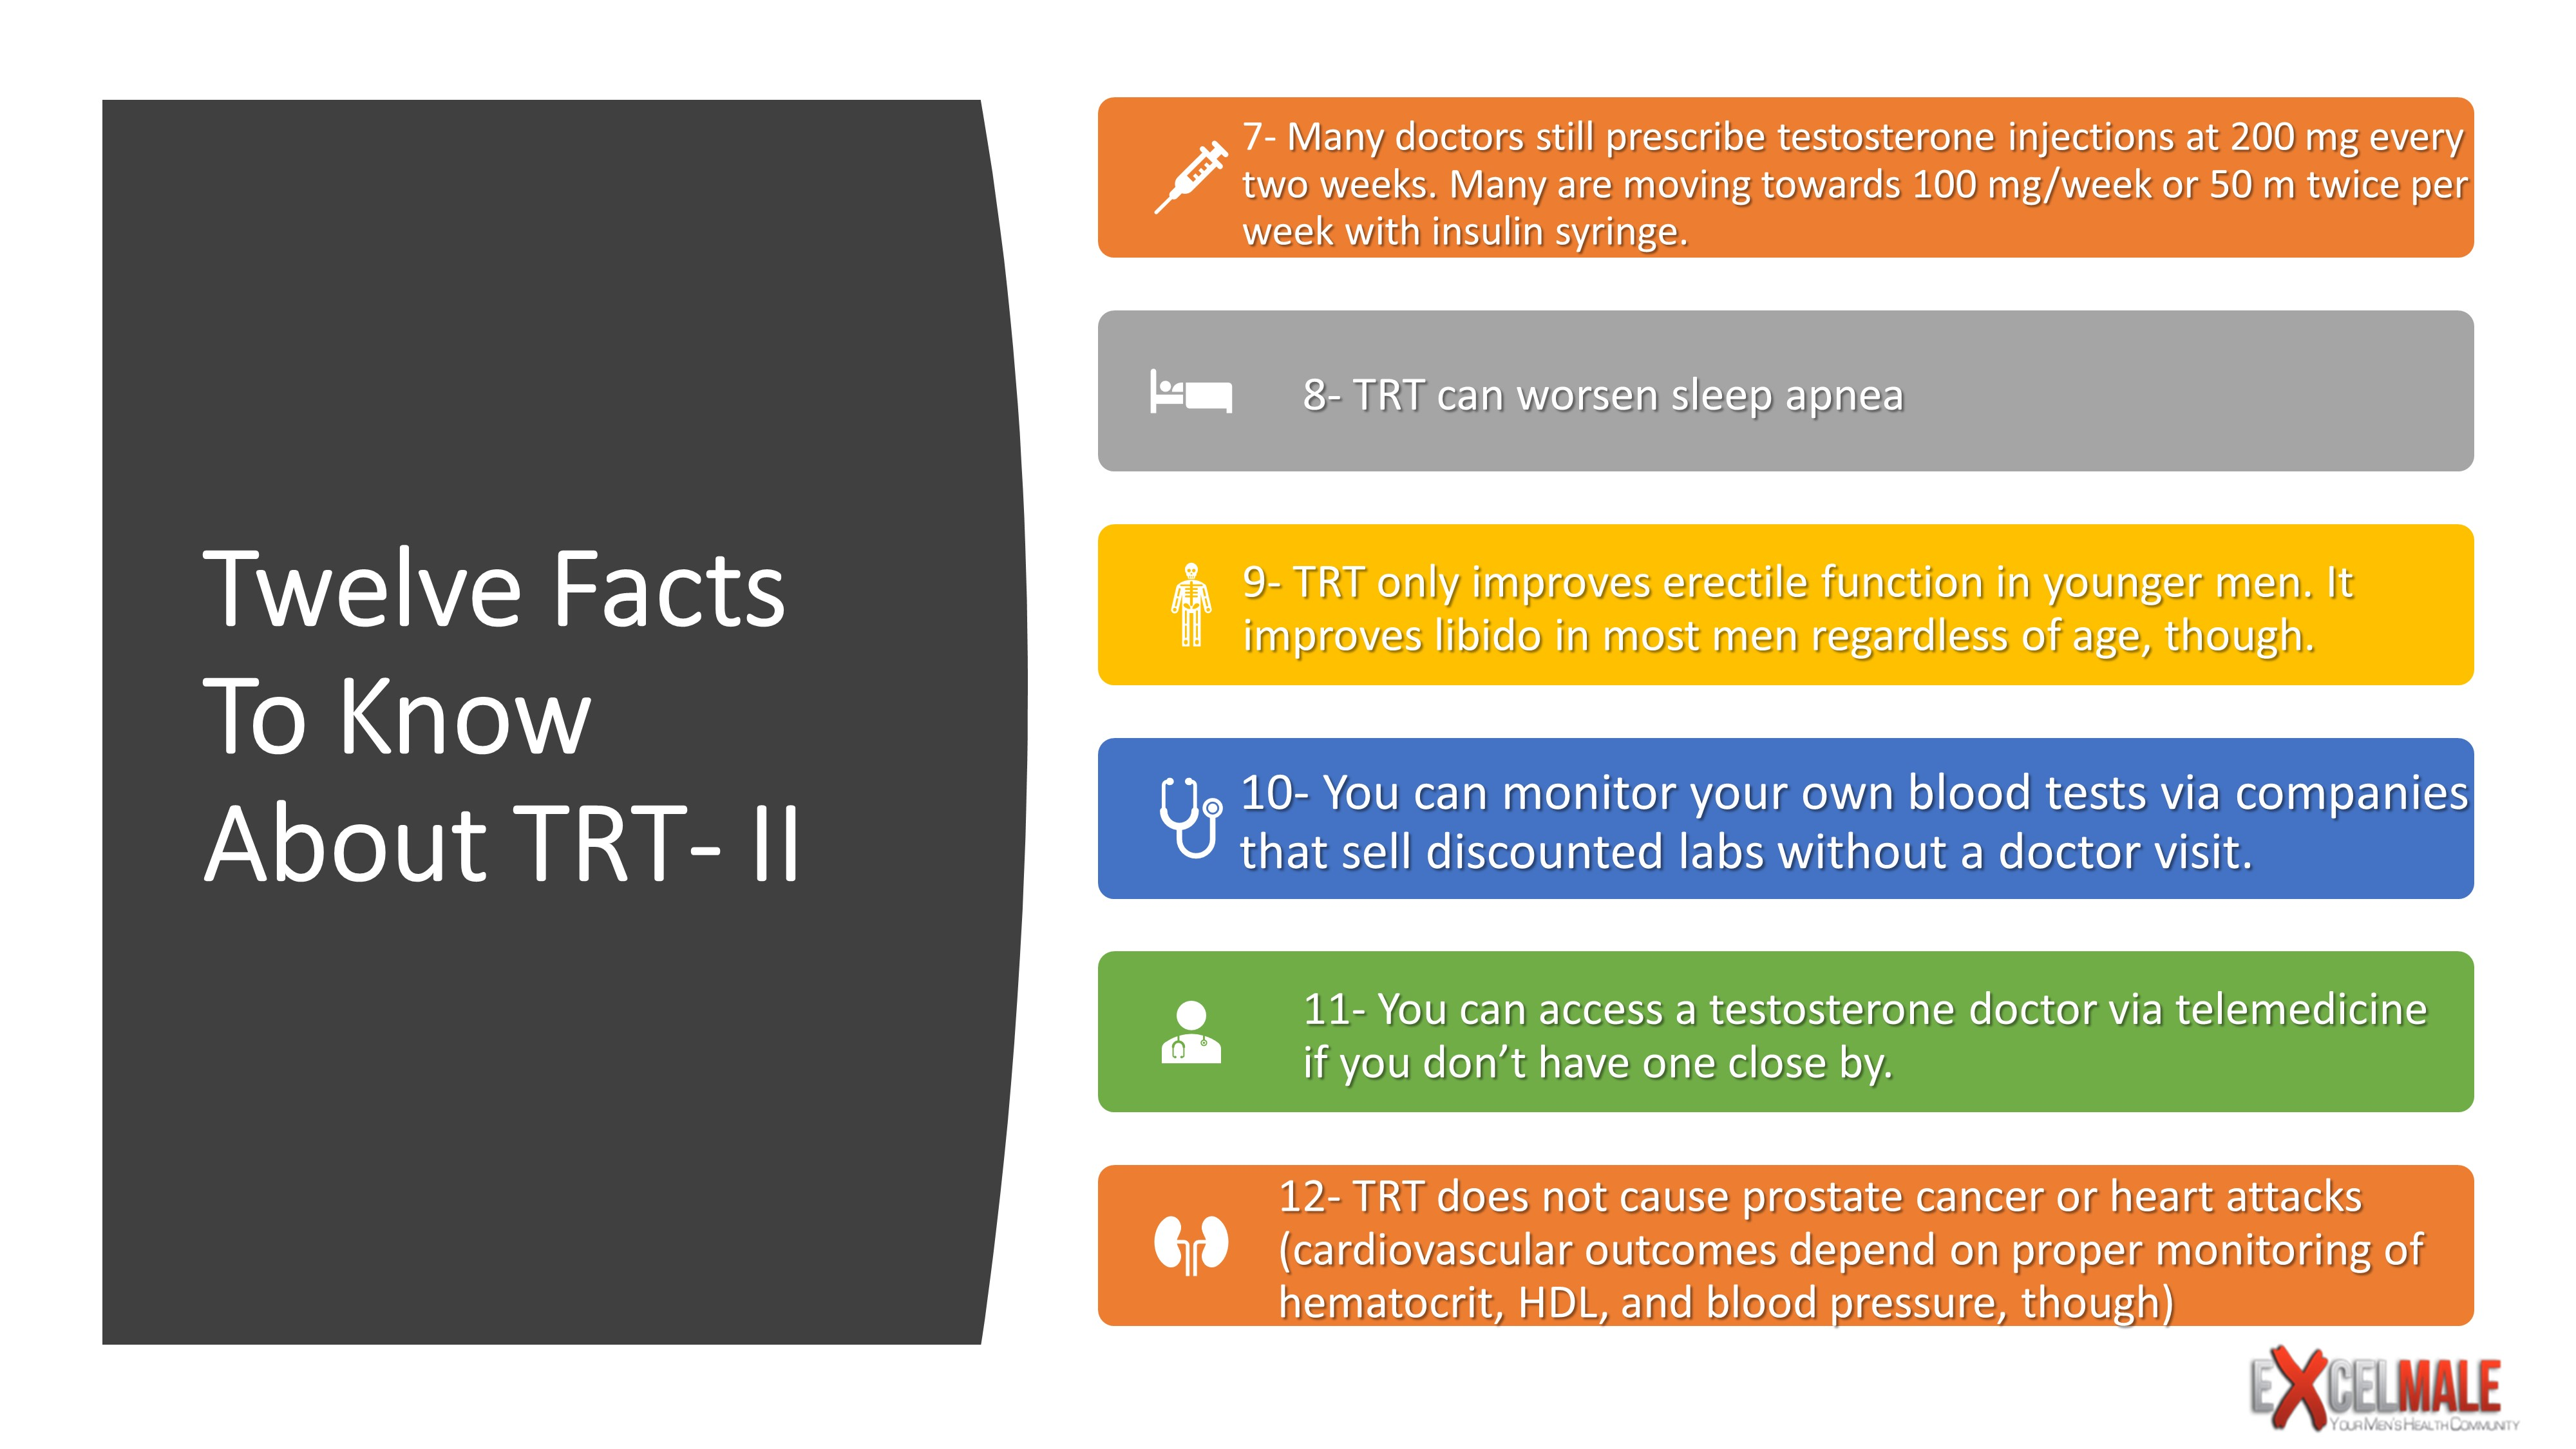 Top Facts to Know About TRT 2.jpg